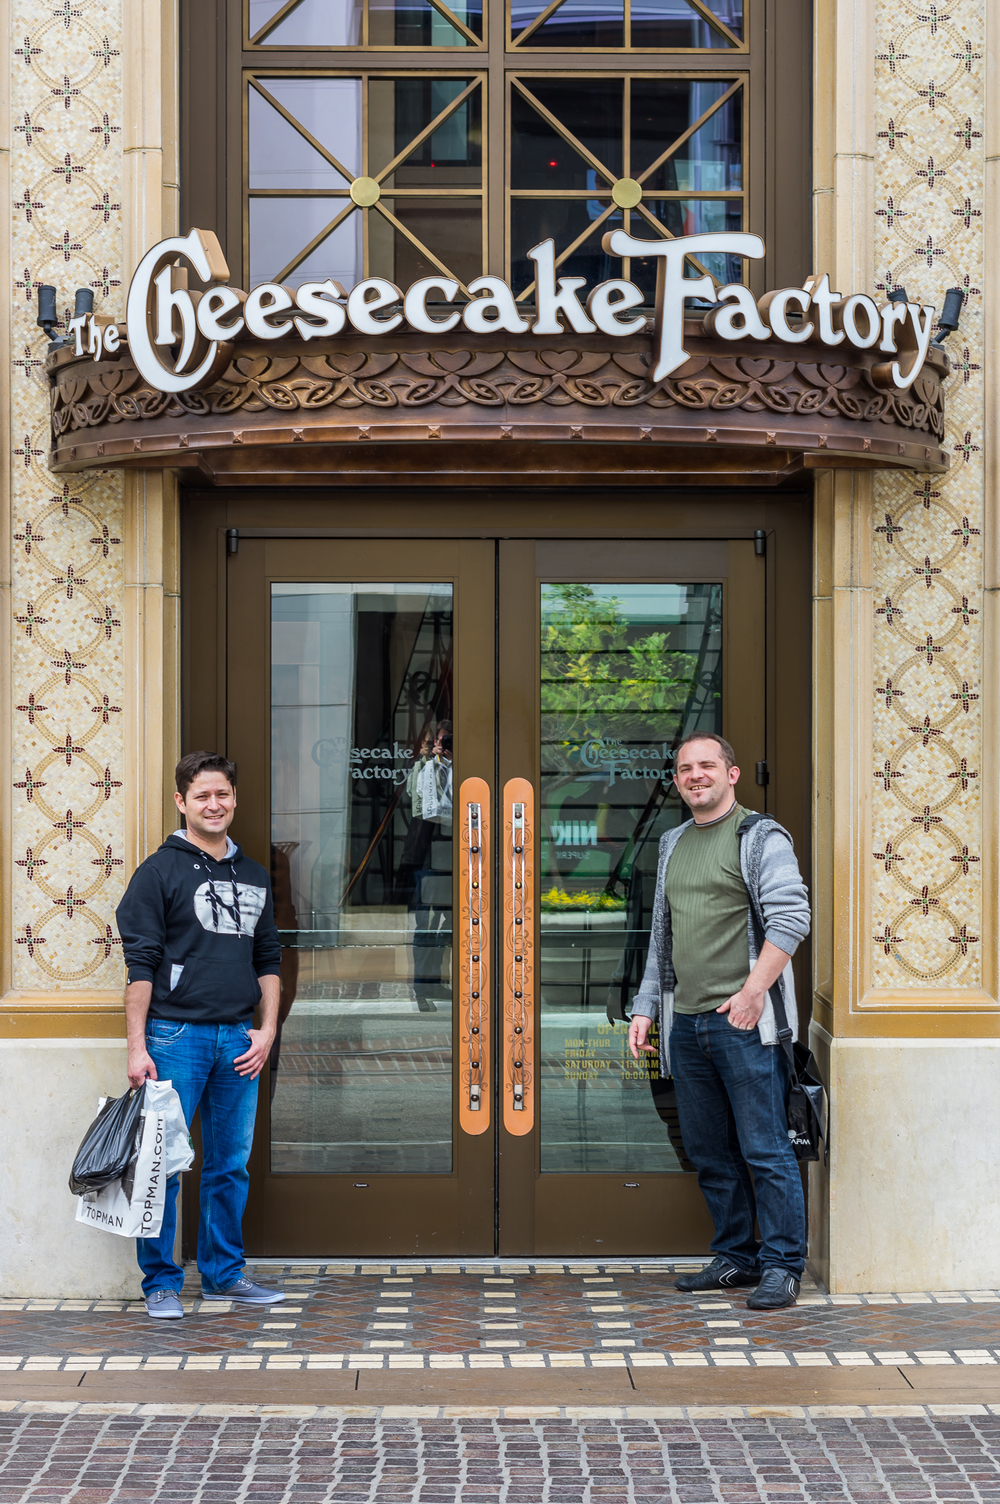 Cheesecake Factory in The Grove